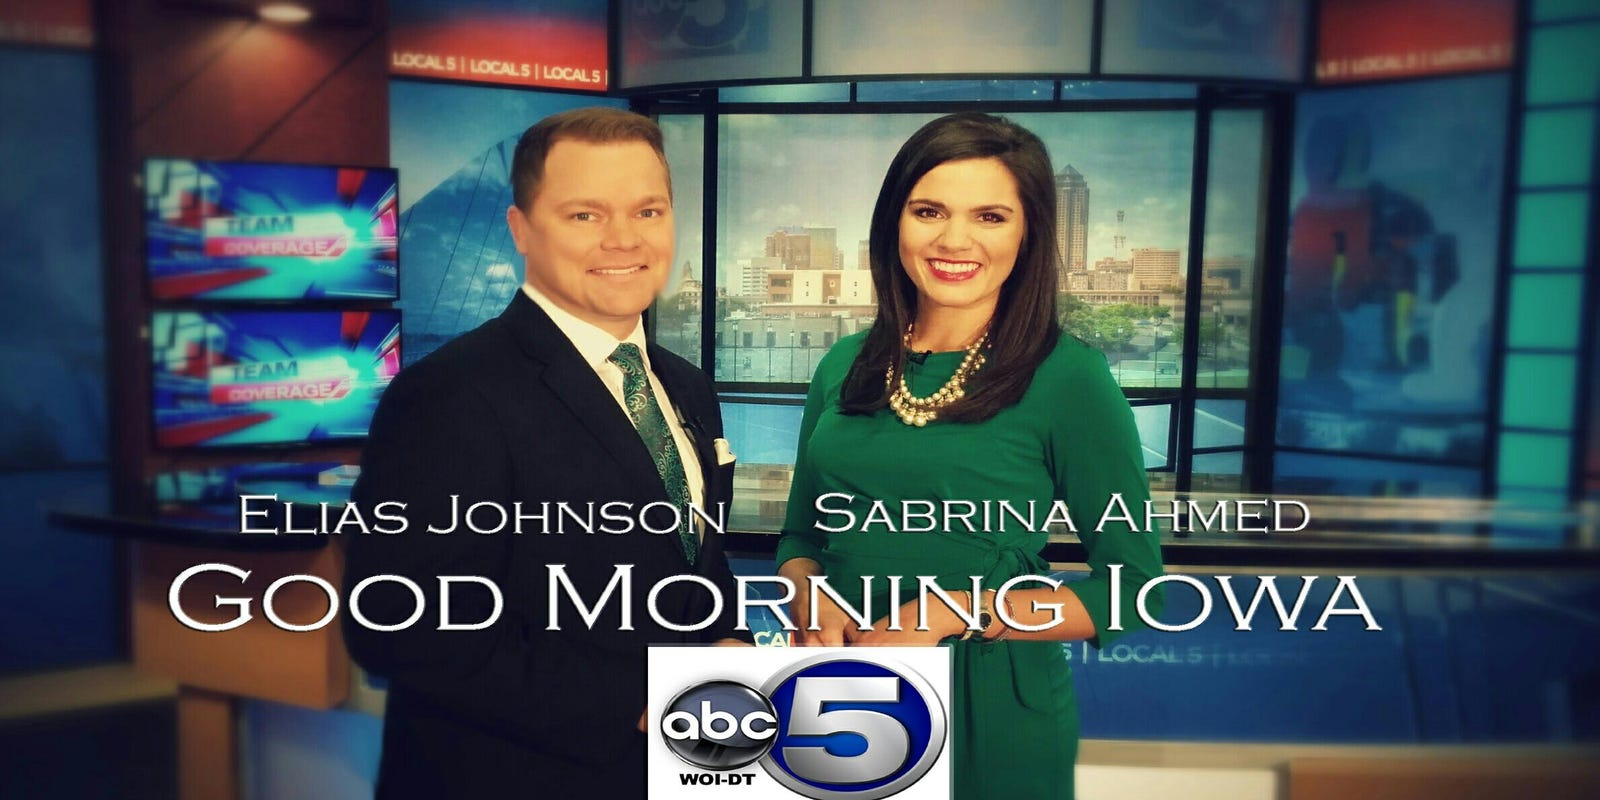 WOI-TV's Elias Johnson to leave 'Good Morning Iowa' in late May after contract impasse